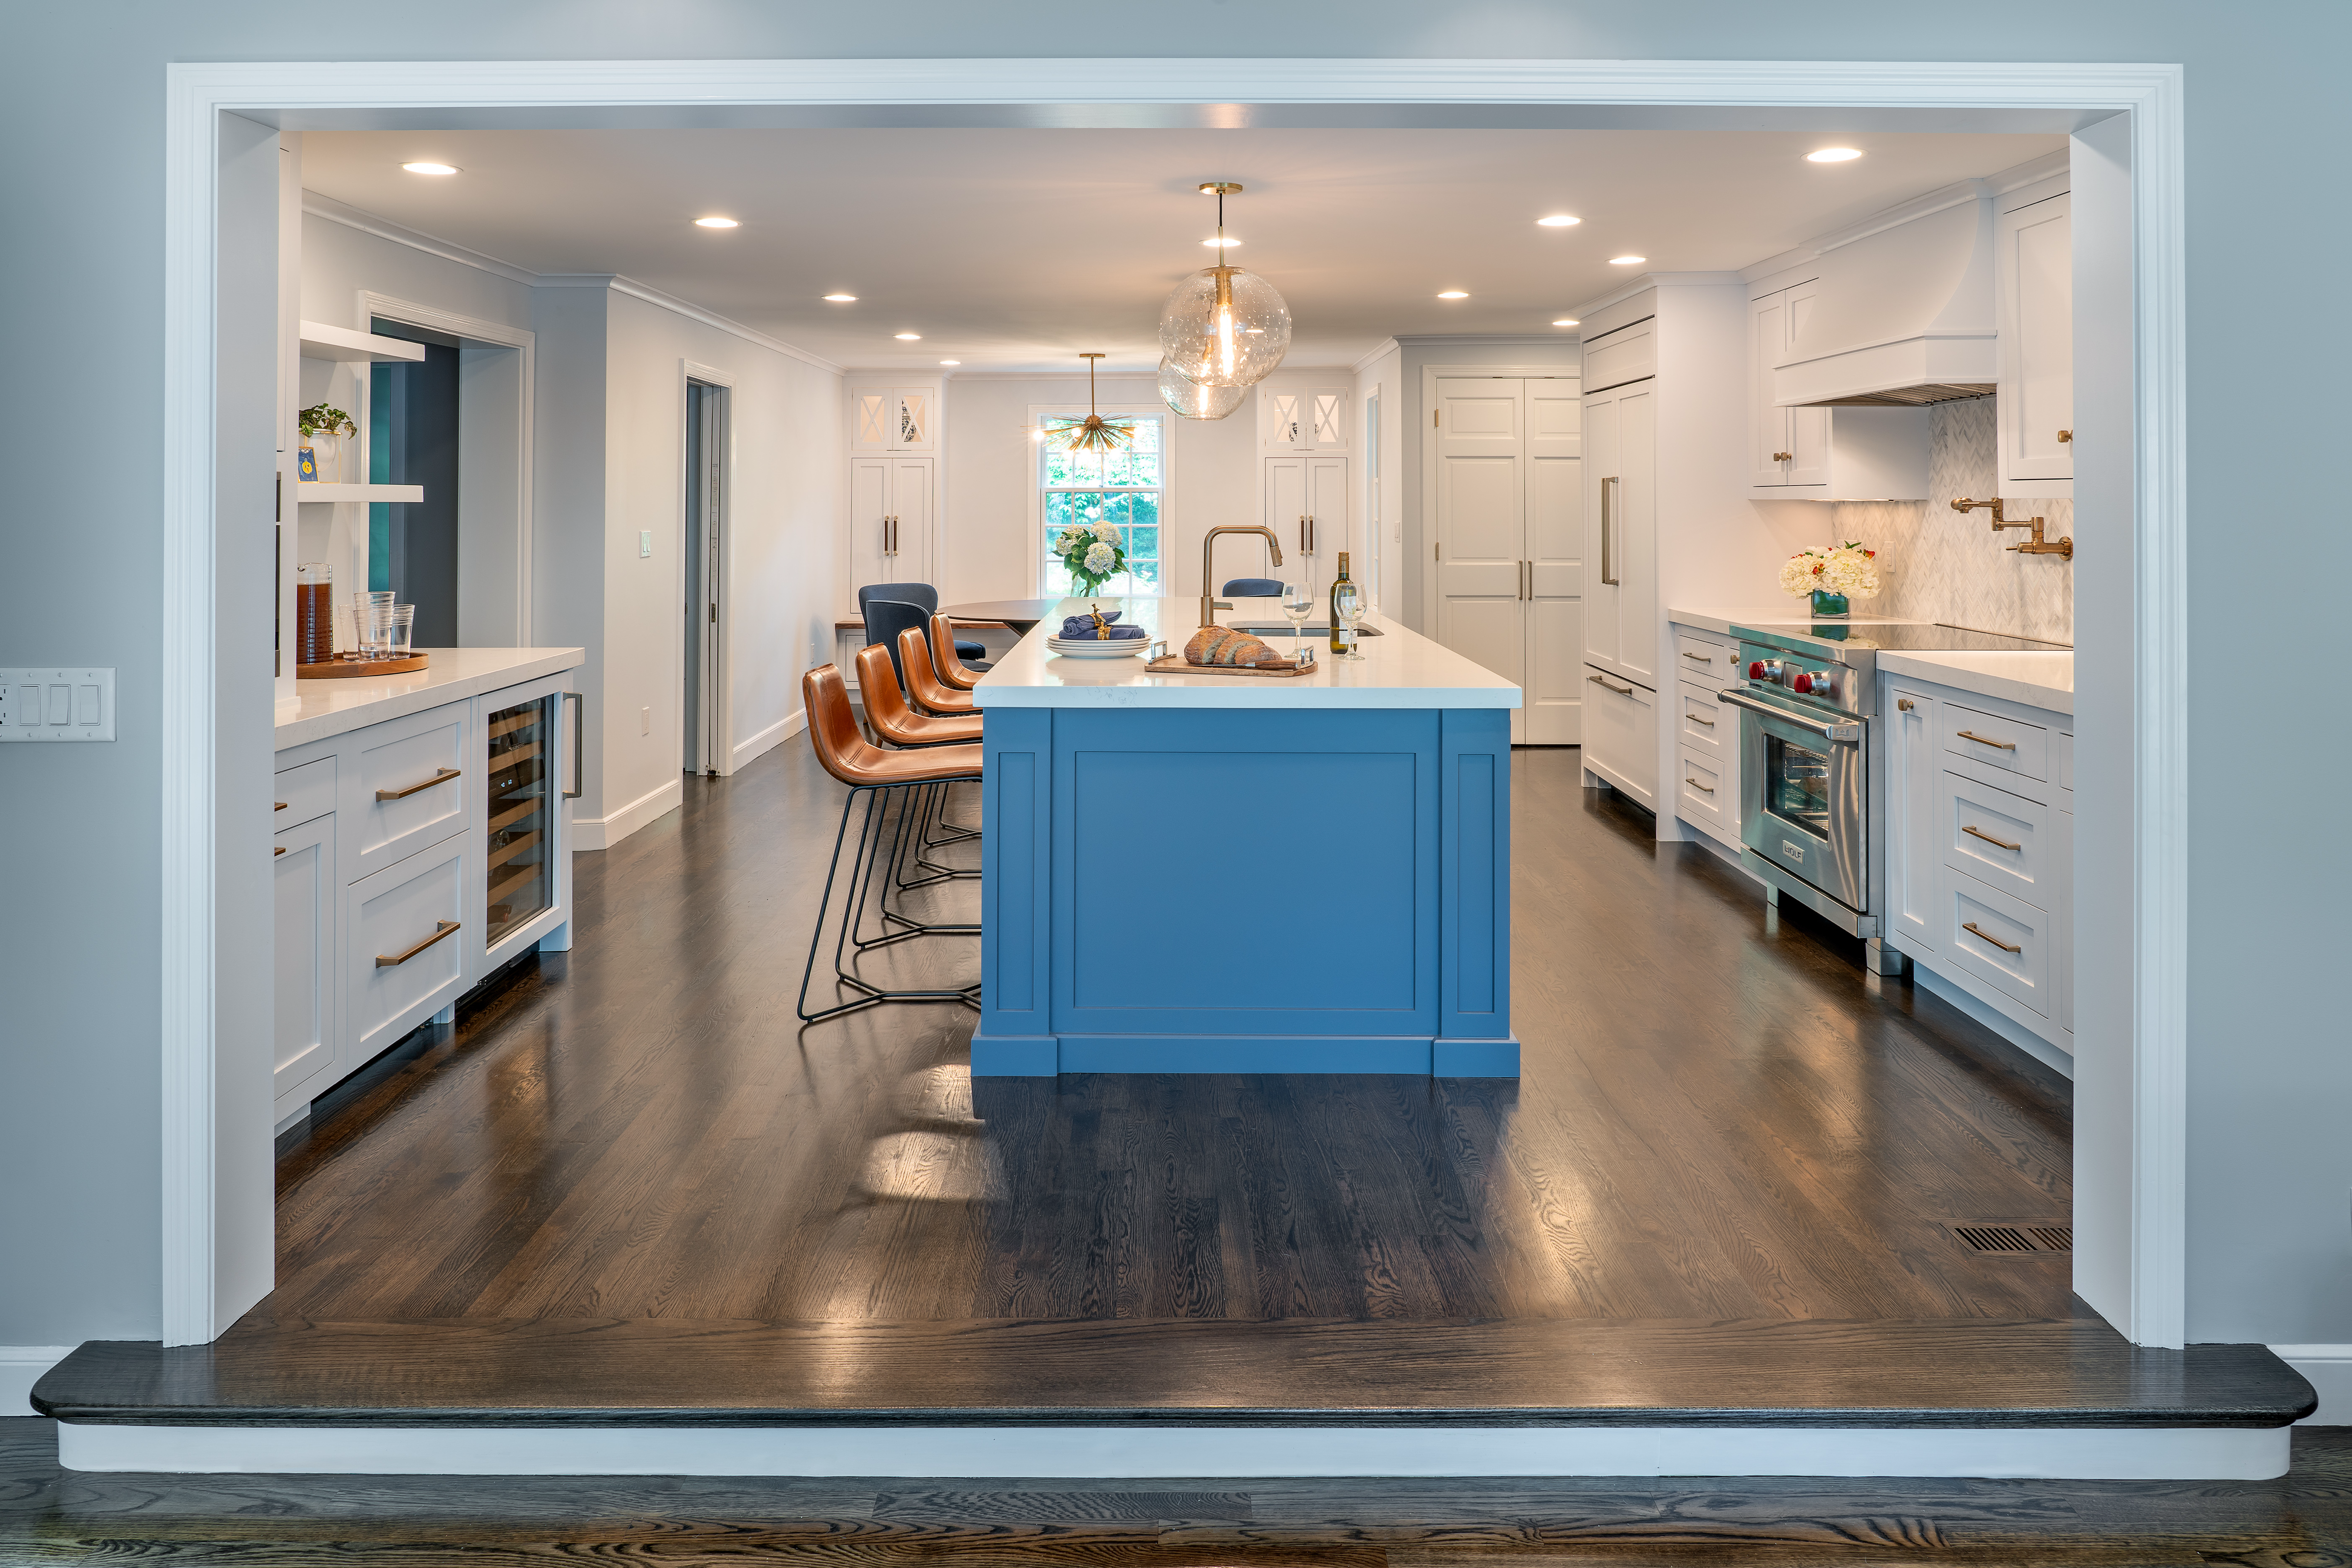 13 Kitchen Remodeling Elements That Improve Flow, Beauty, and Functionality